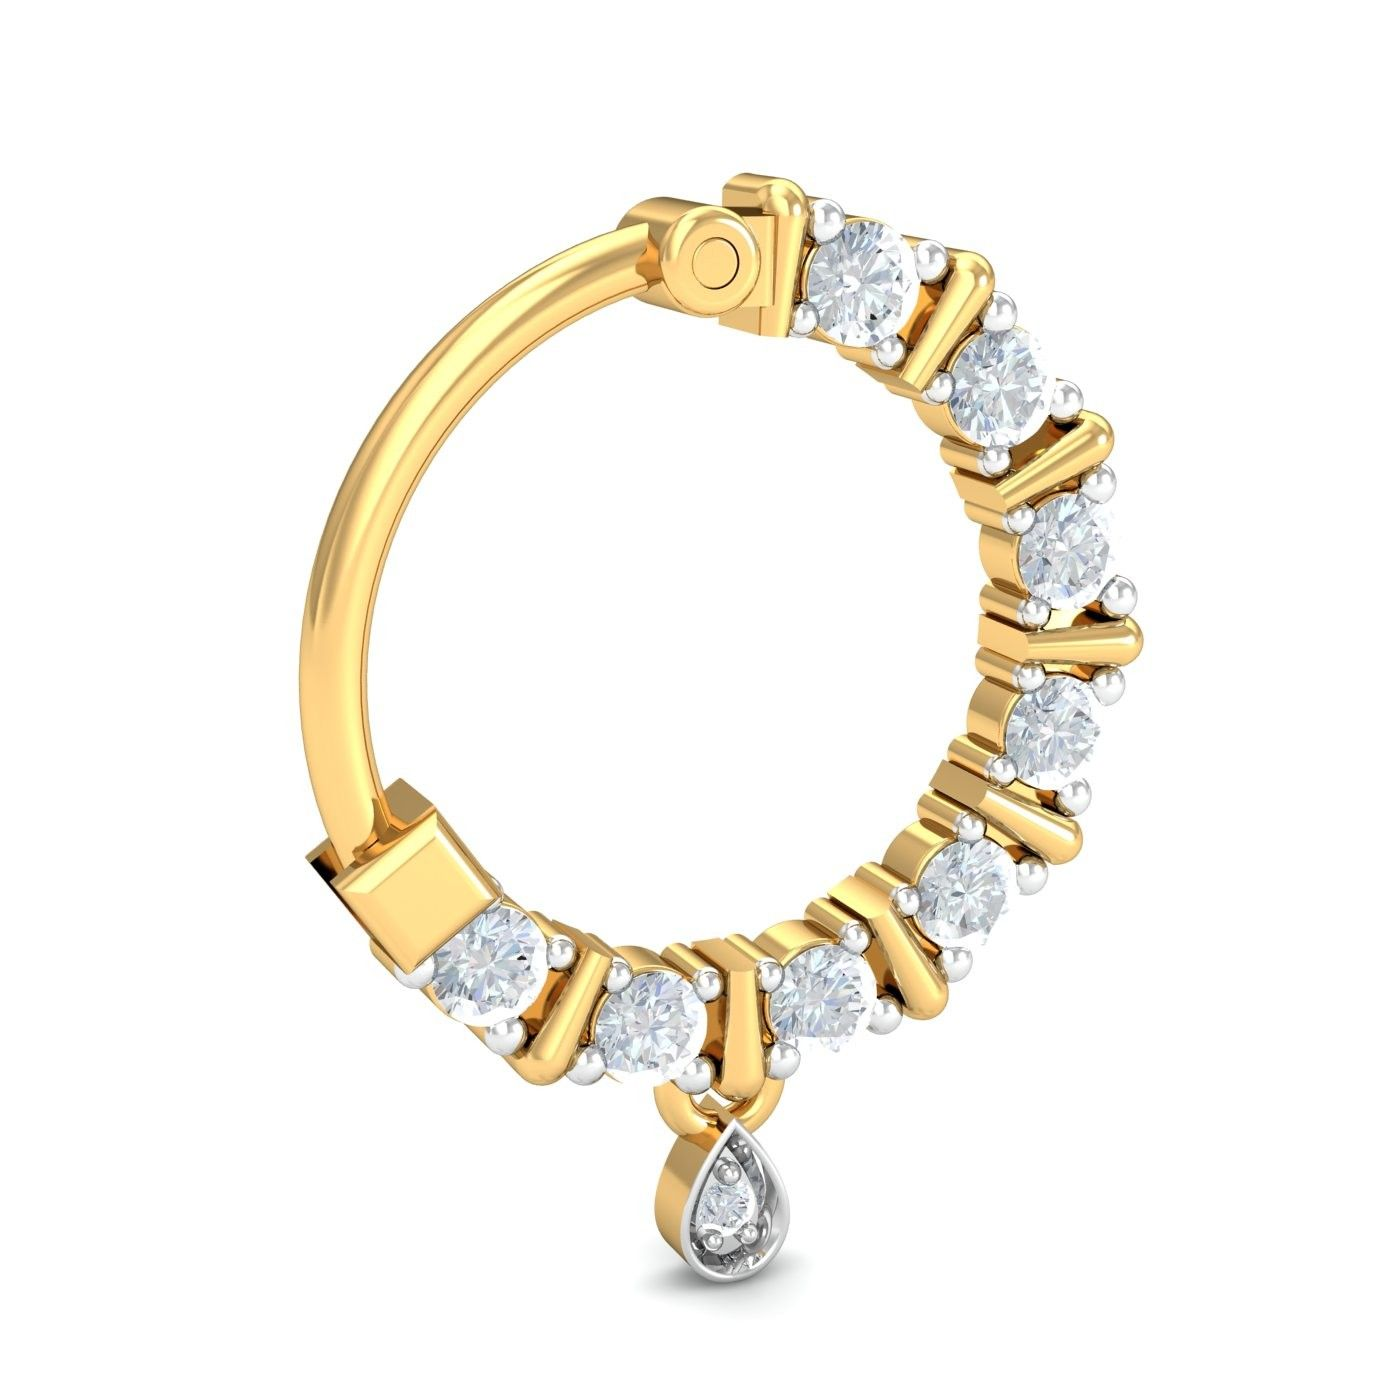 About nath nose ring mukku pudaka on pinterest jewellery gold nose - Ring